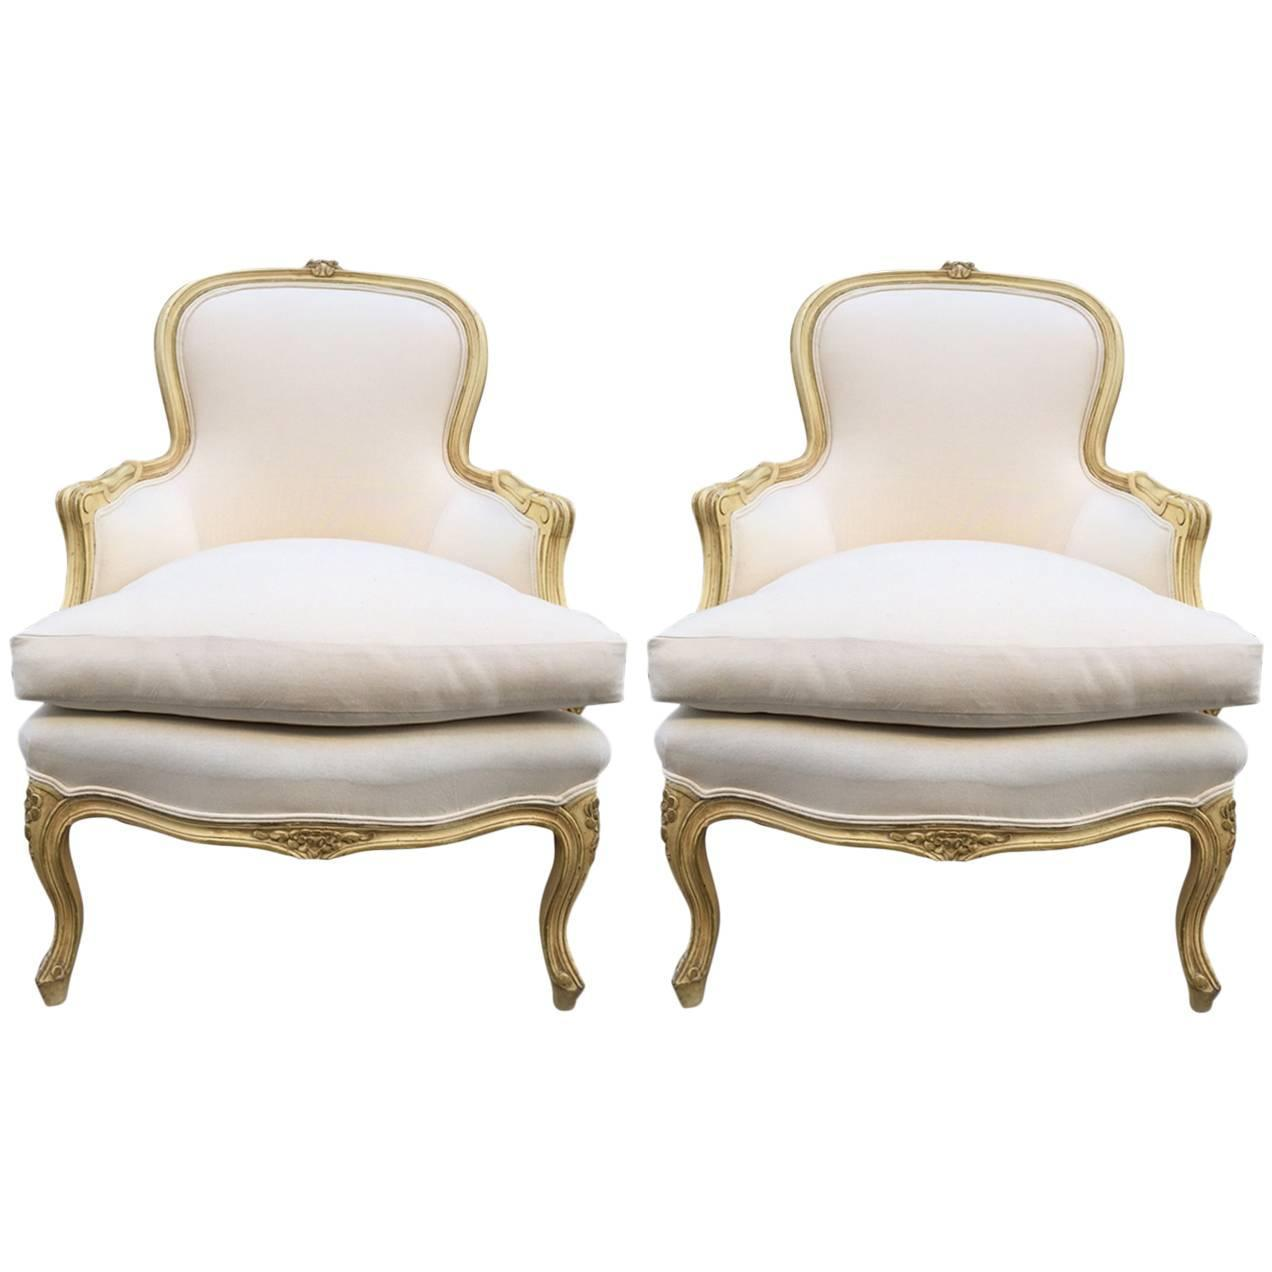 Pair of French Louis XV Style Bergere Chairs For Sale at 1stdibs